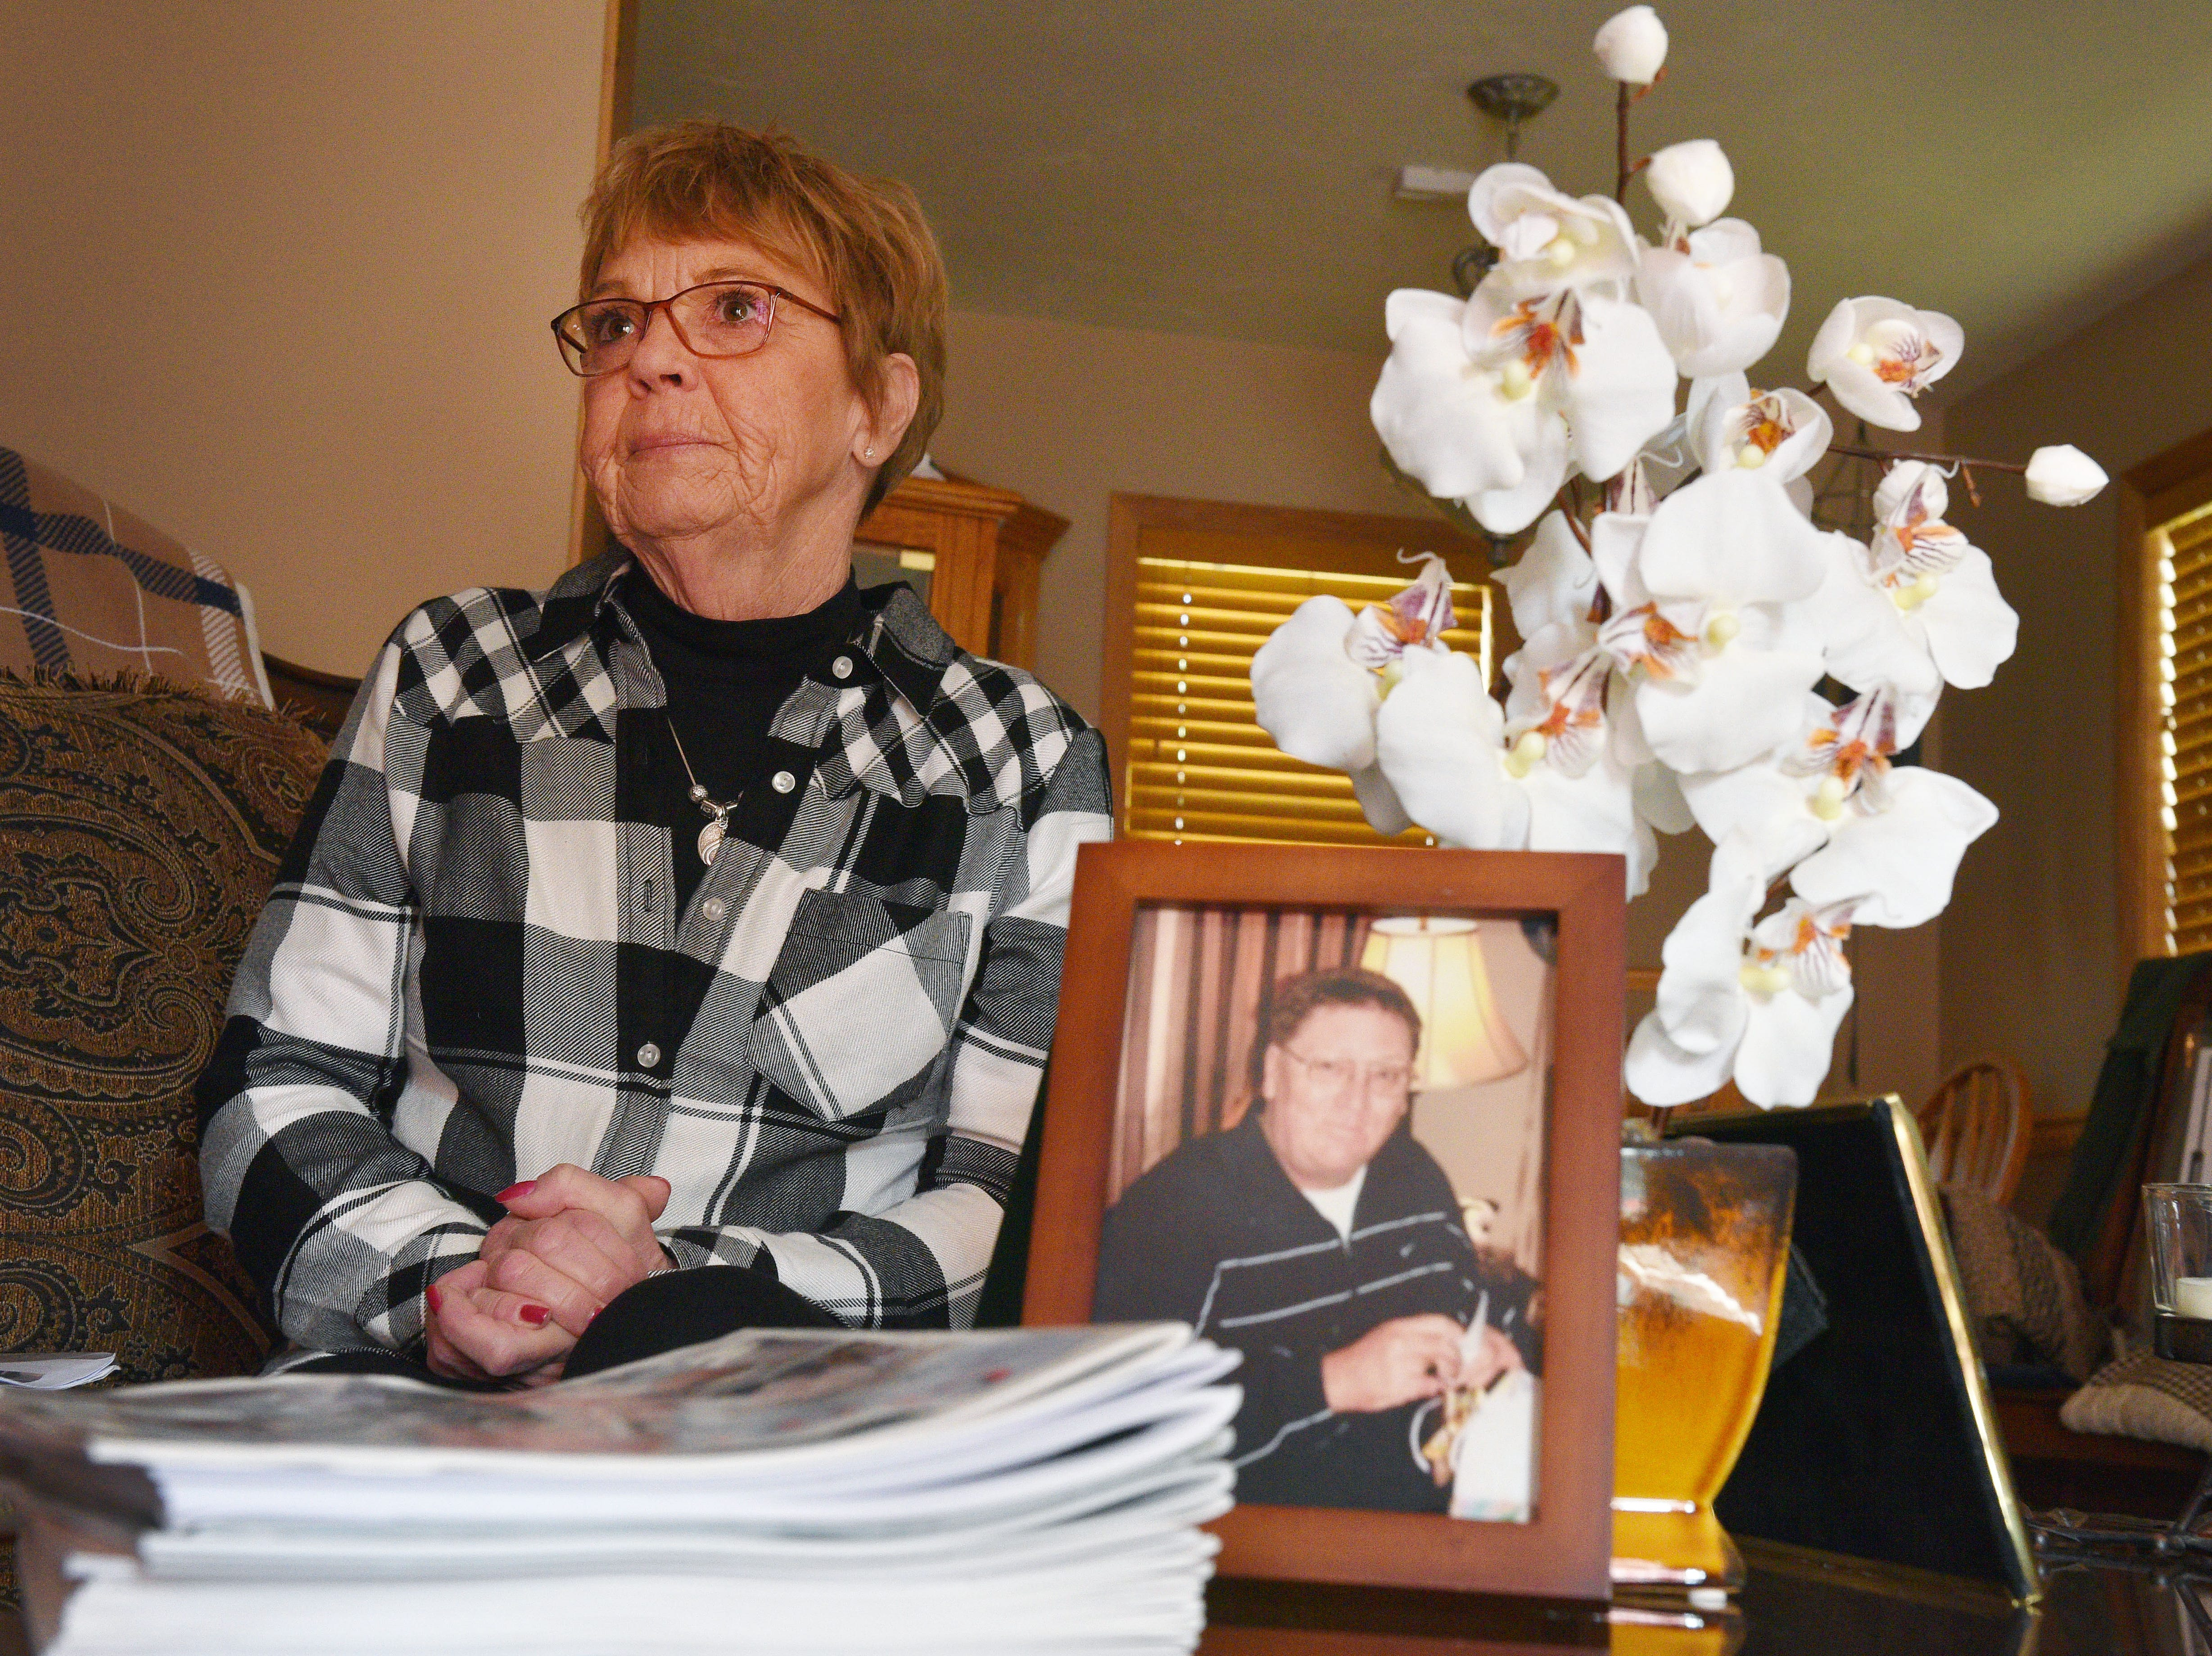 Lynette Johnson talks about her late husband RJ Johnson Wednesday, Oct. 24, at her home in Sioux Falls. RJ was killed while on duty as a correctional officer in 2011 by two inmates trying to escape. One of those inmates, Rodney Berget, is being executed. The other inmate, Eric Robert, was executed in 2012.